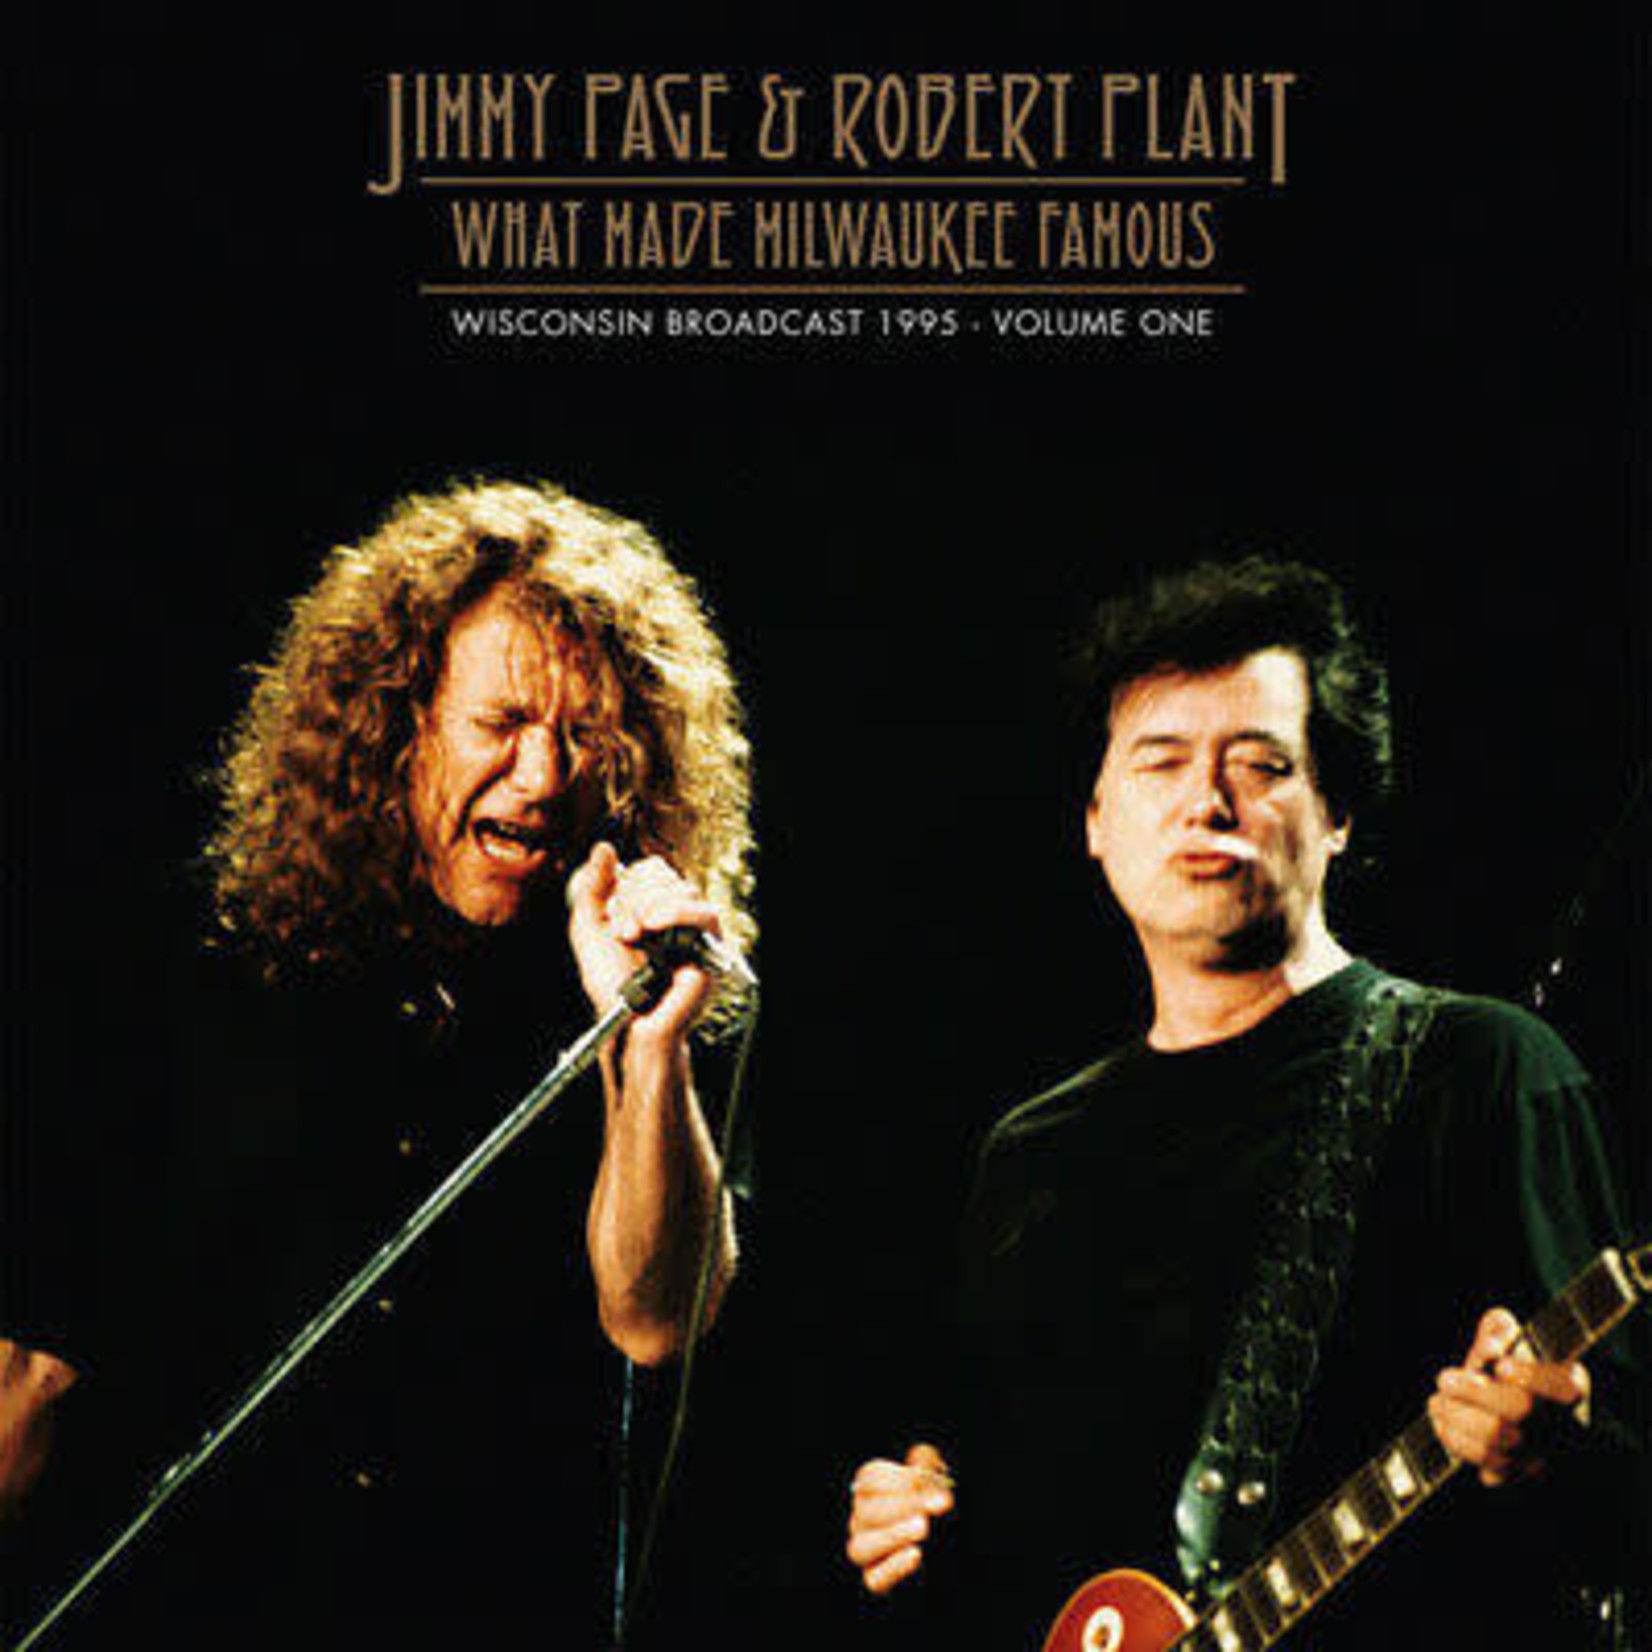 [New] Page, Jimmy & Robert Plant (Led Zeppelin): What Made Milwaukee Famous Vol. 1 (2LP)